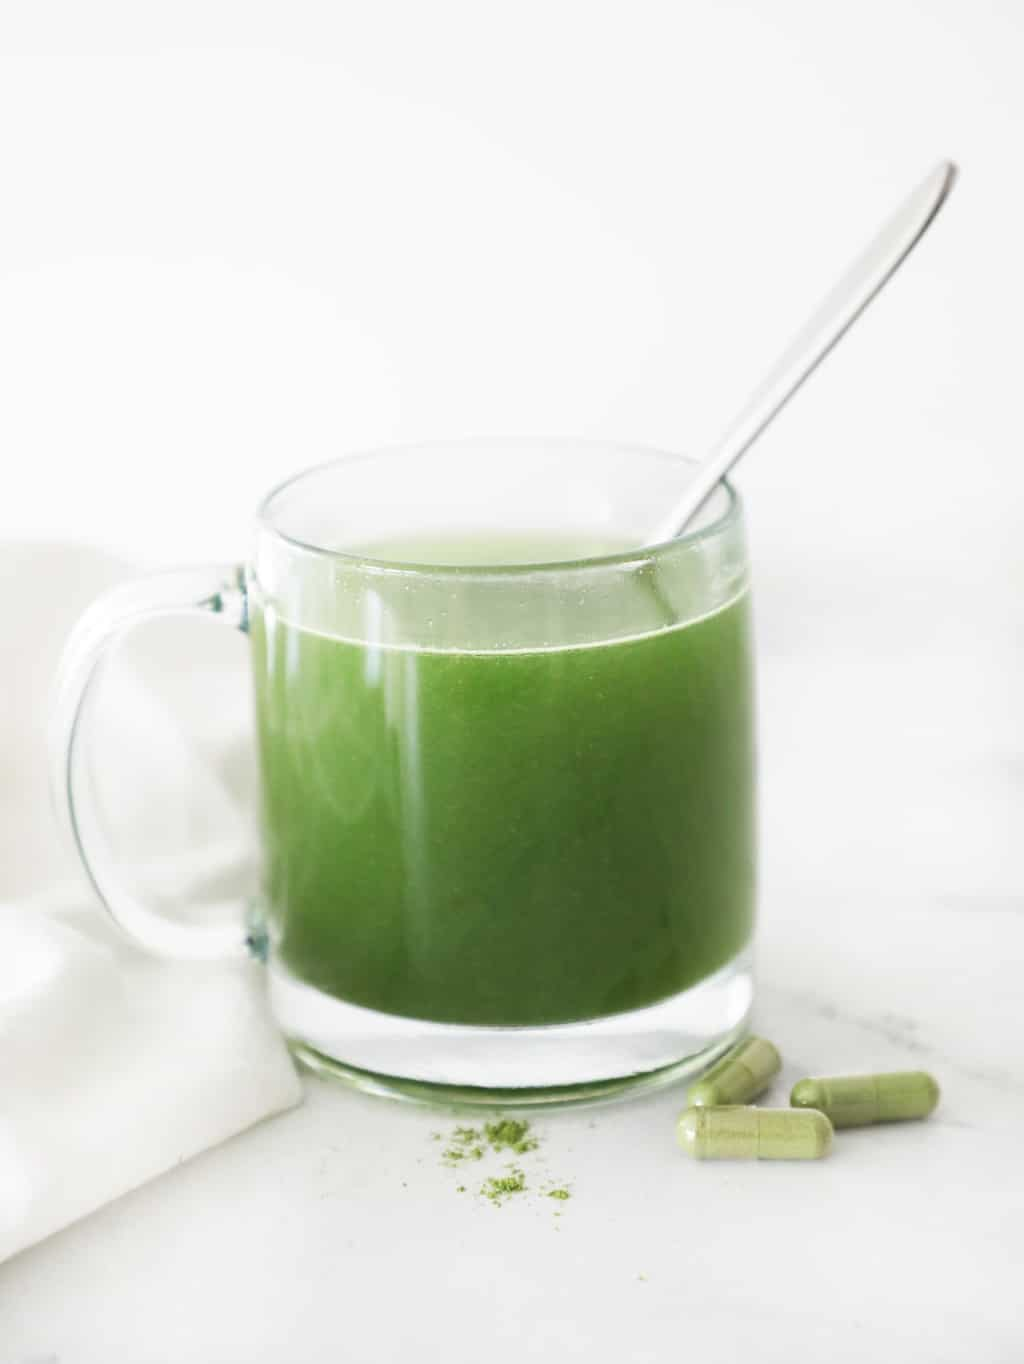 BON veggie capsules diluted in water in a clear mug with a spoon sticking out